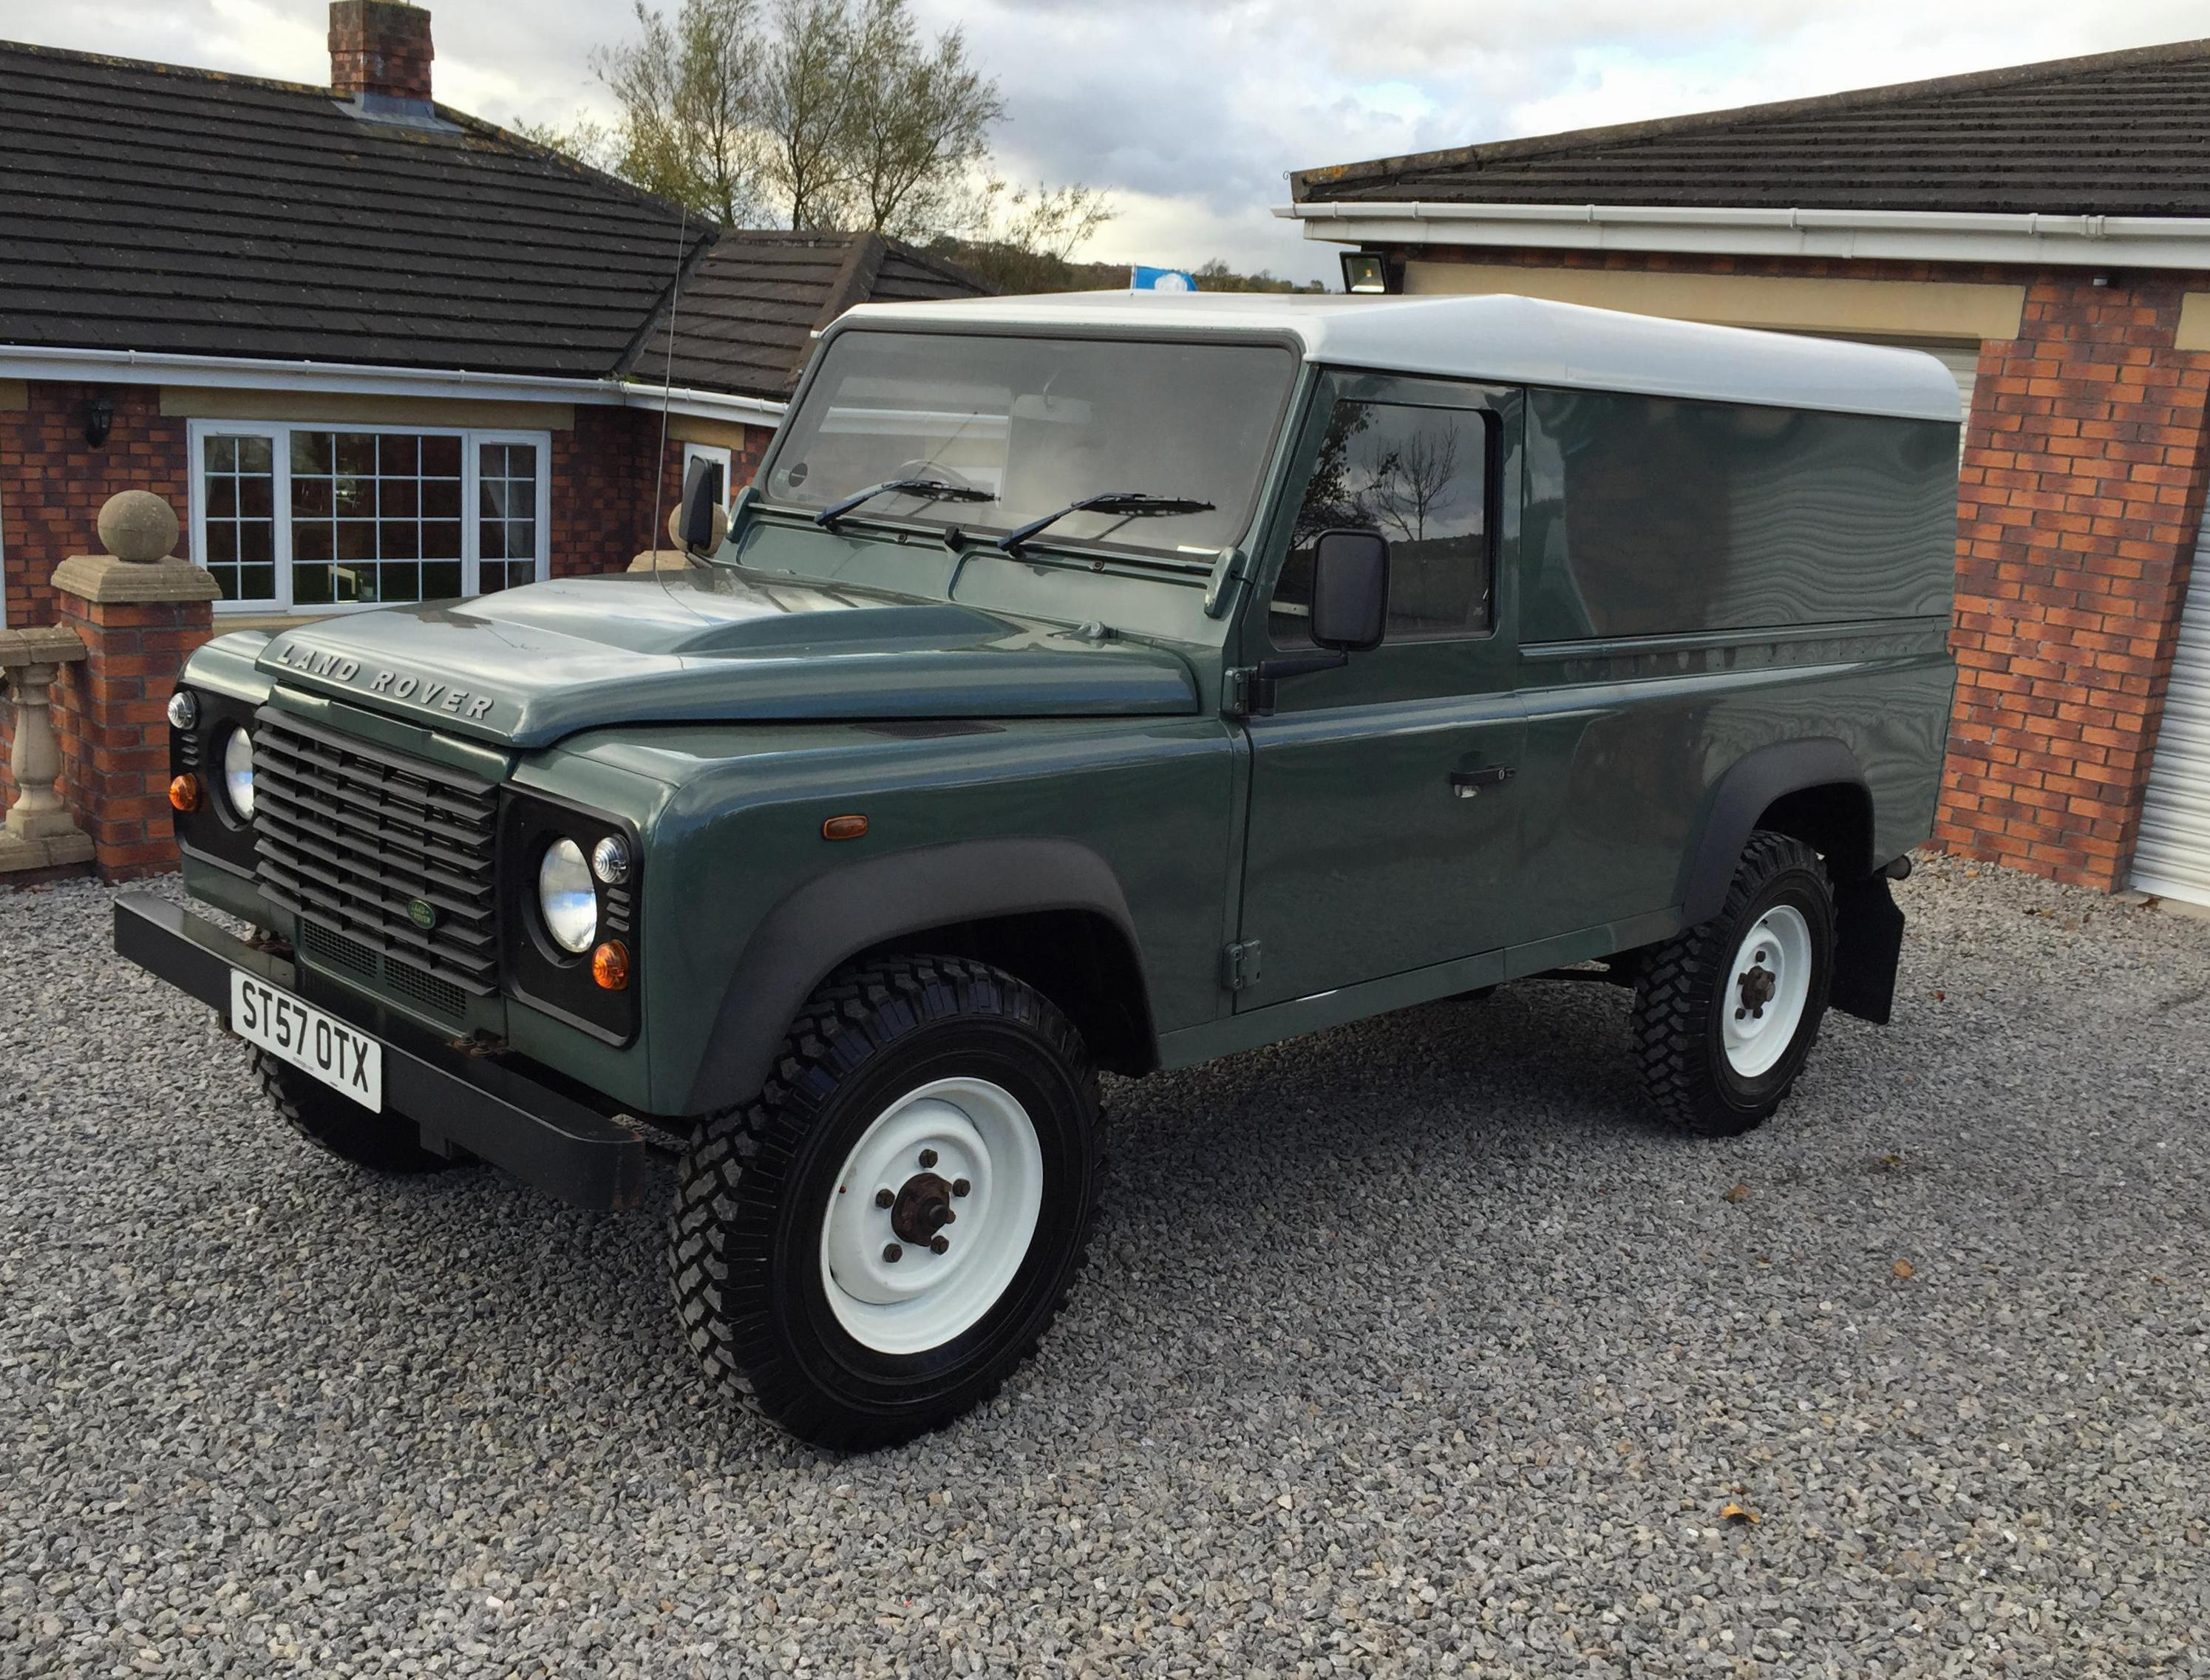 Land Rover 110 Hard Top model 2010